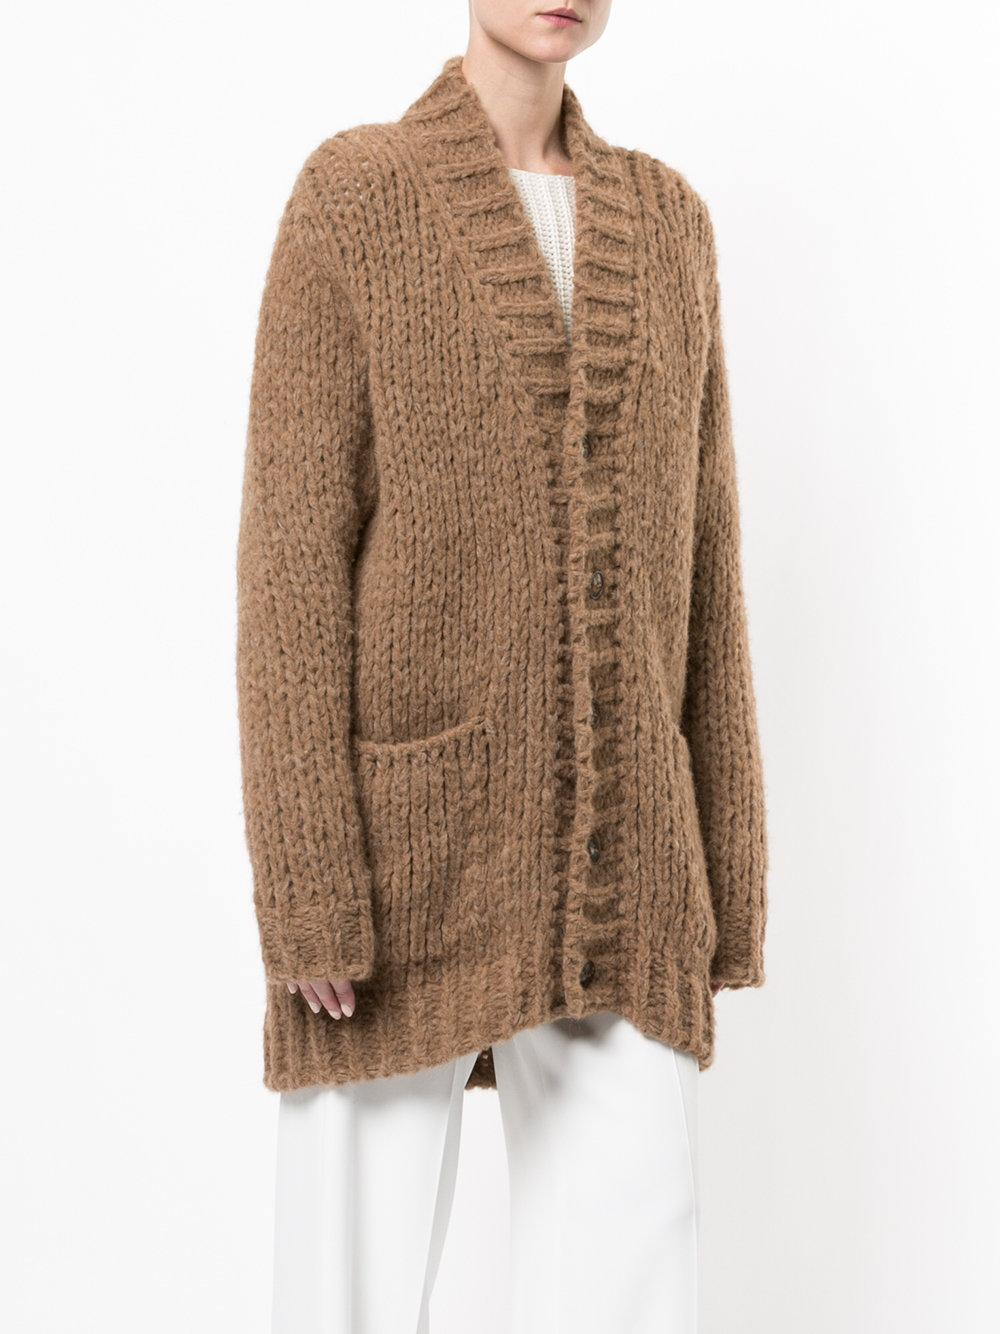 Roberto collina Oversized Chunky Knit Cardigan in Brown | Lyst